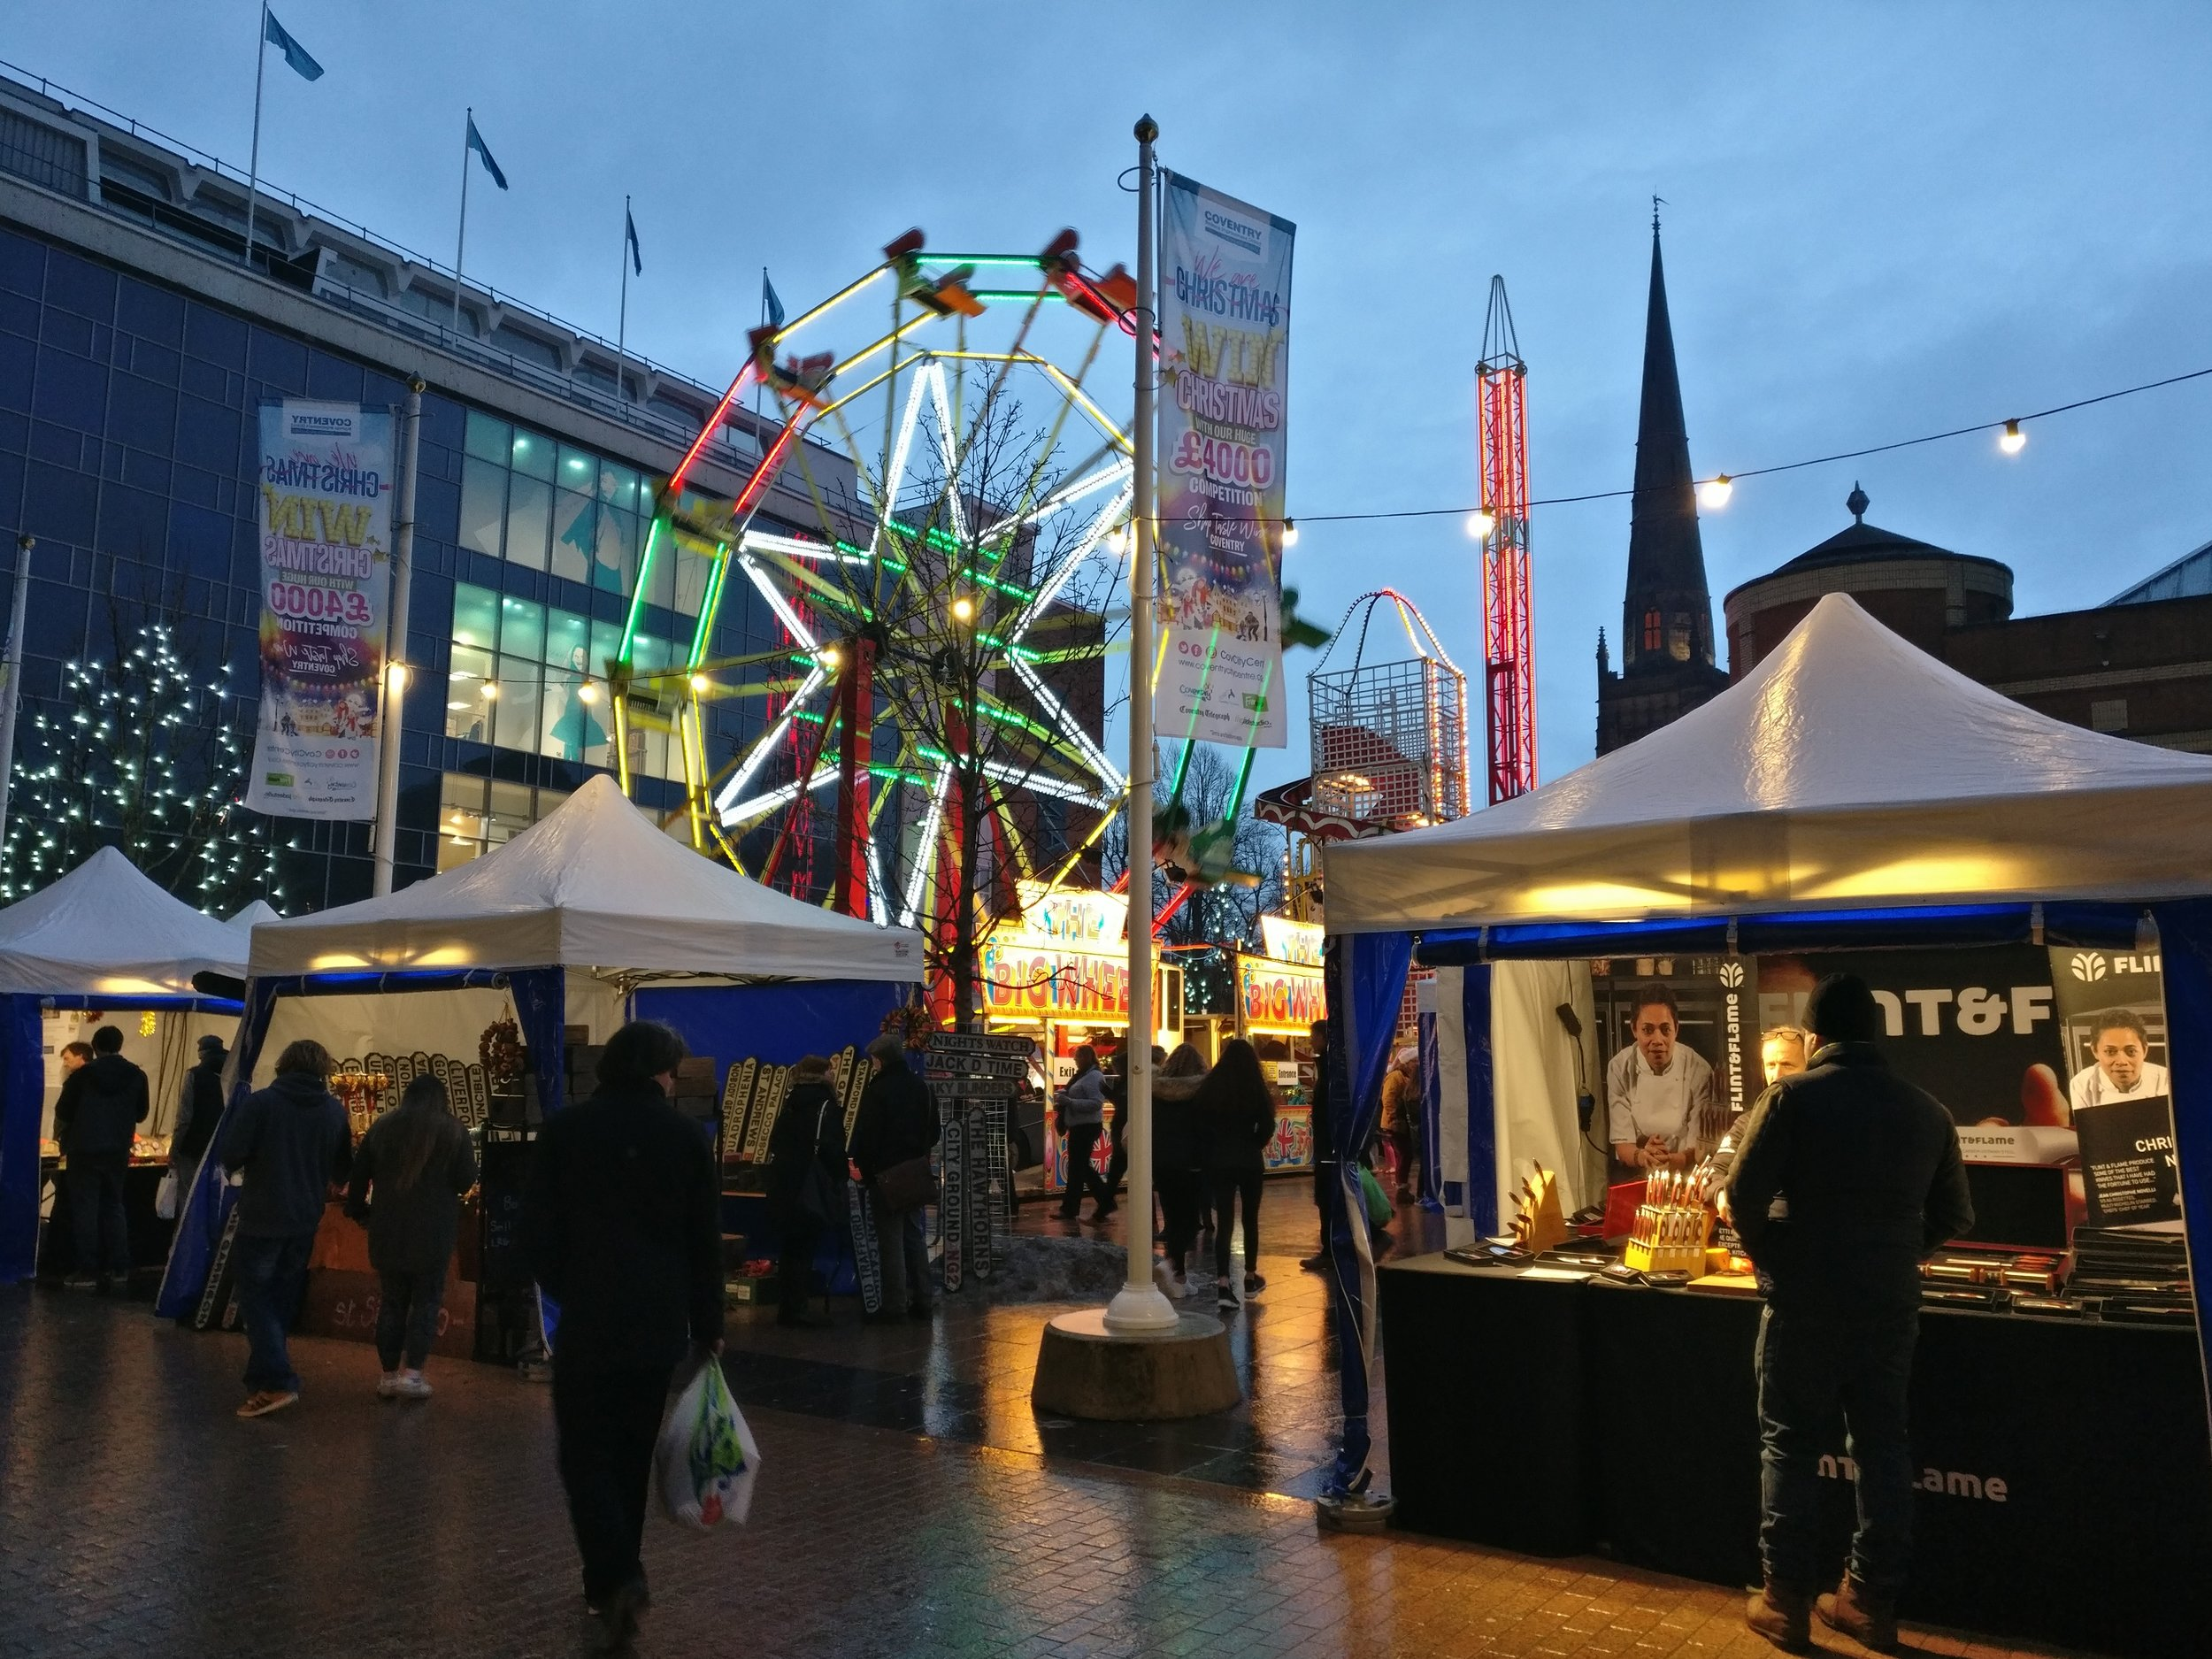 The centre of Coventry all dolled up for the holidays